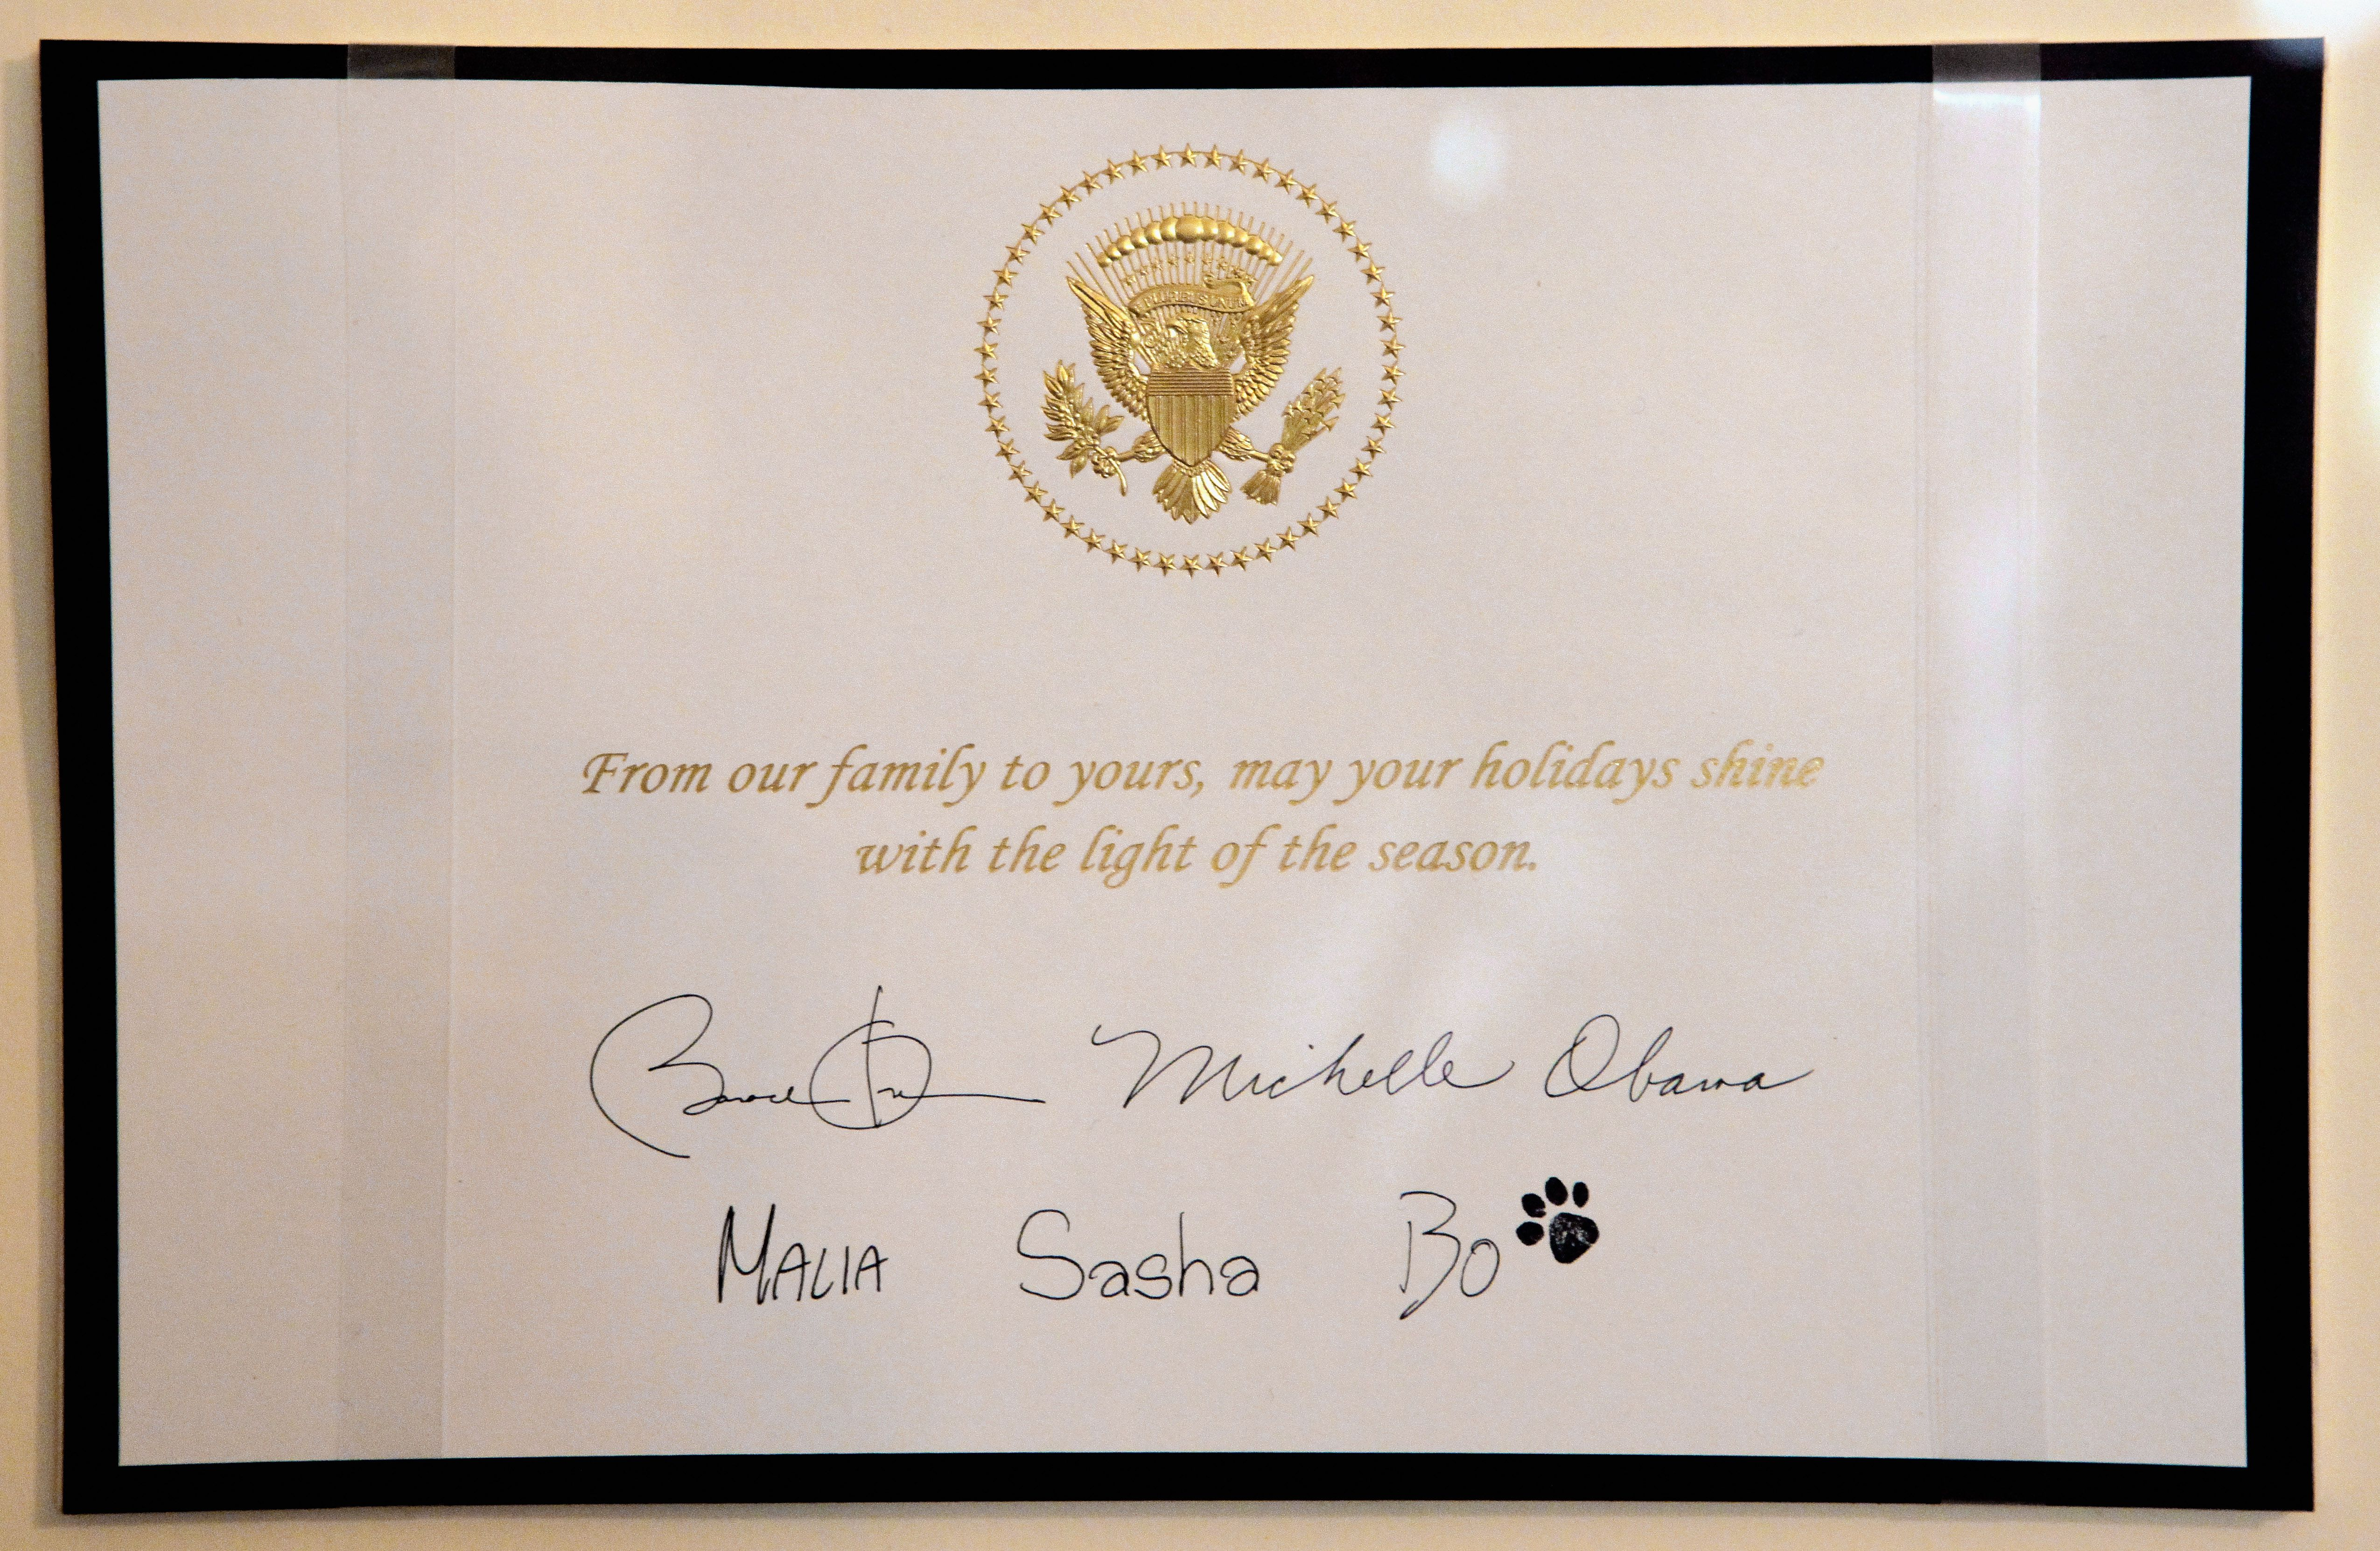 How to order greeting cards from the white house kristyandbryce Images